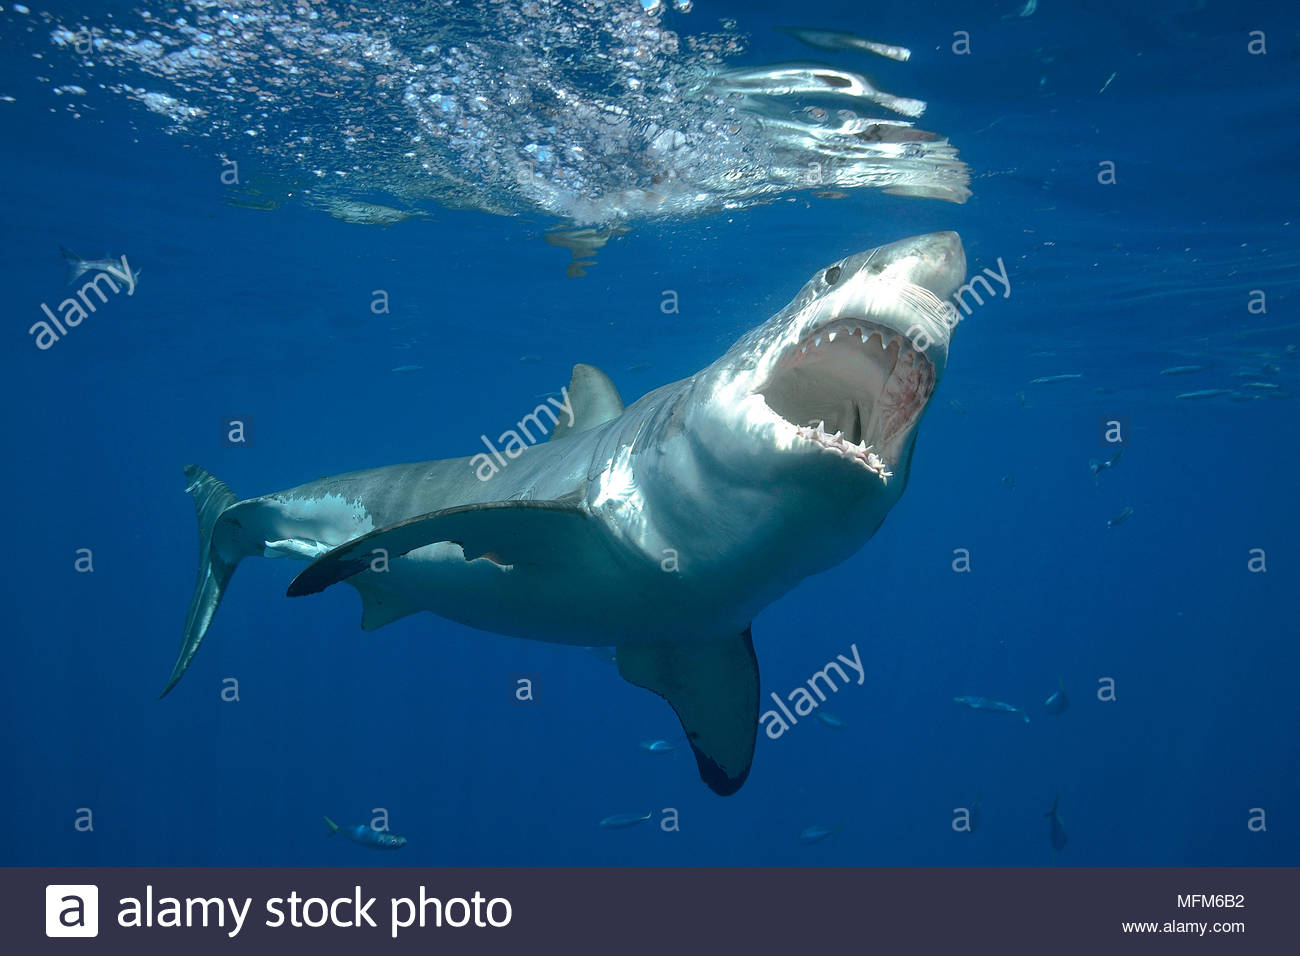 great white shark mouth open stock photos great white shark mouth